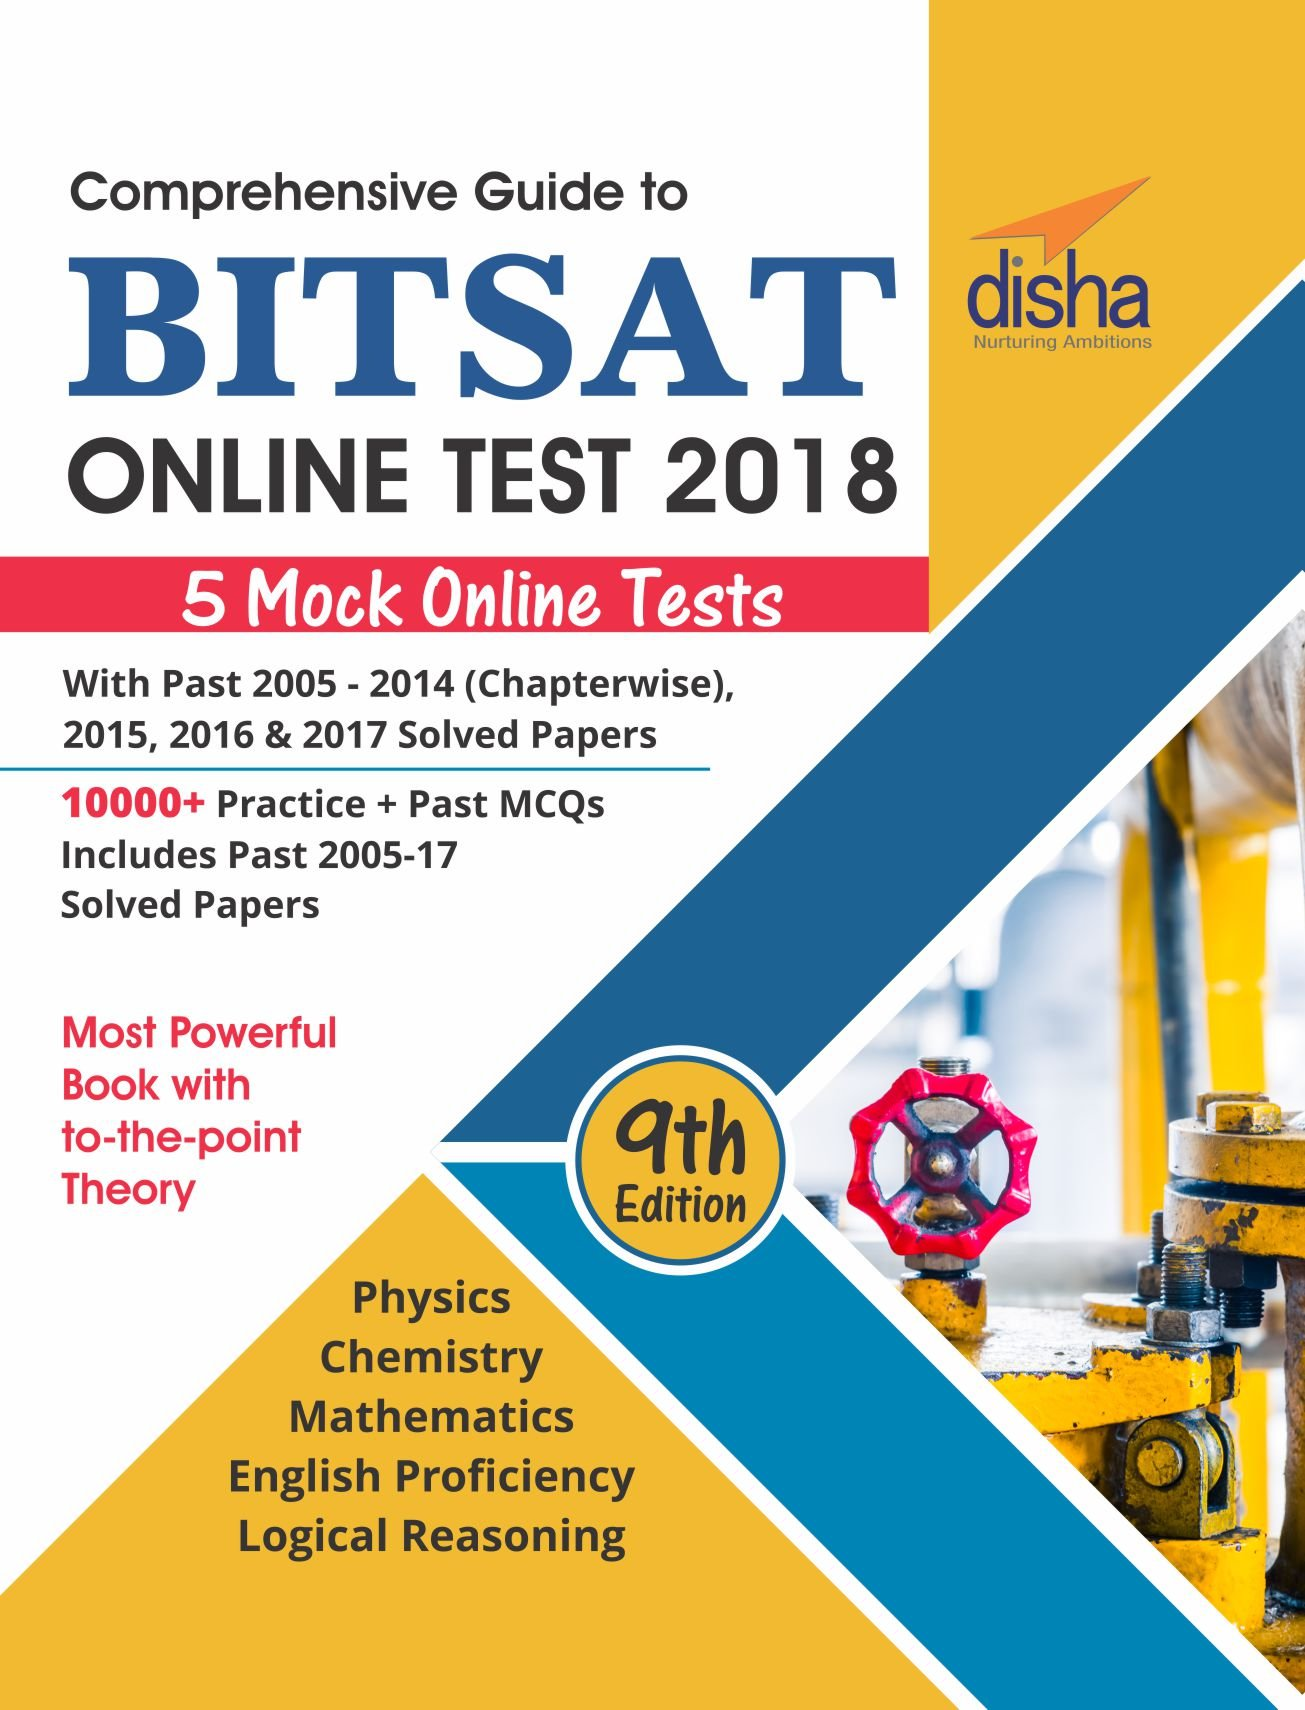 Buy comprehensive guide to bitsat online test 2018 with past 2005 buy comprehensive guide to bitsat online test 2018 with past 2005 2017 solved papers 5 mock online tests book online at low prices in india fandeluxe Images